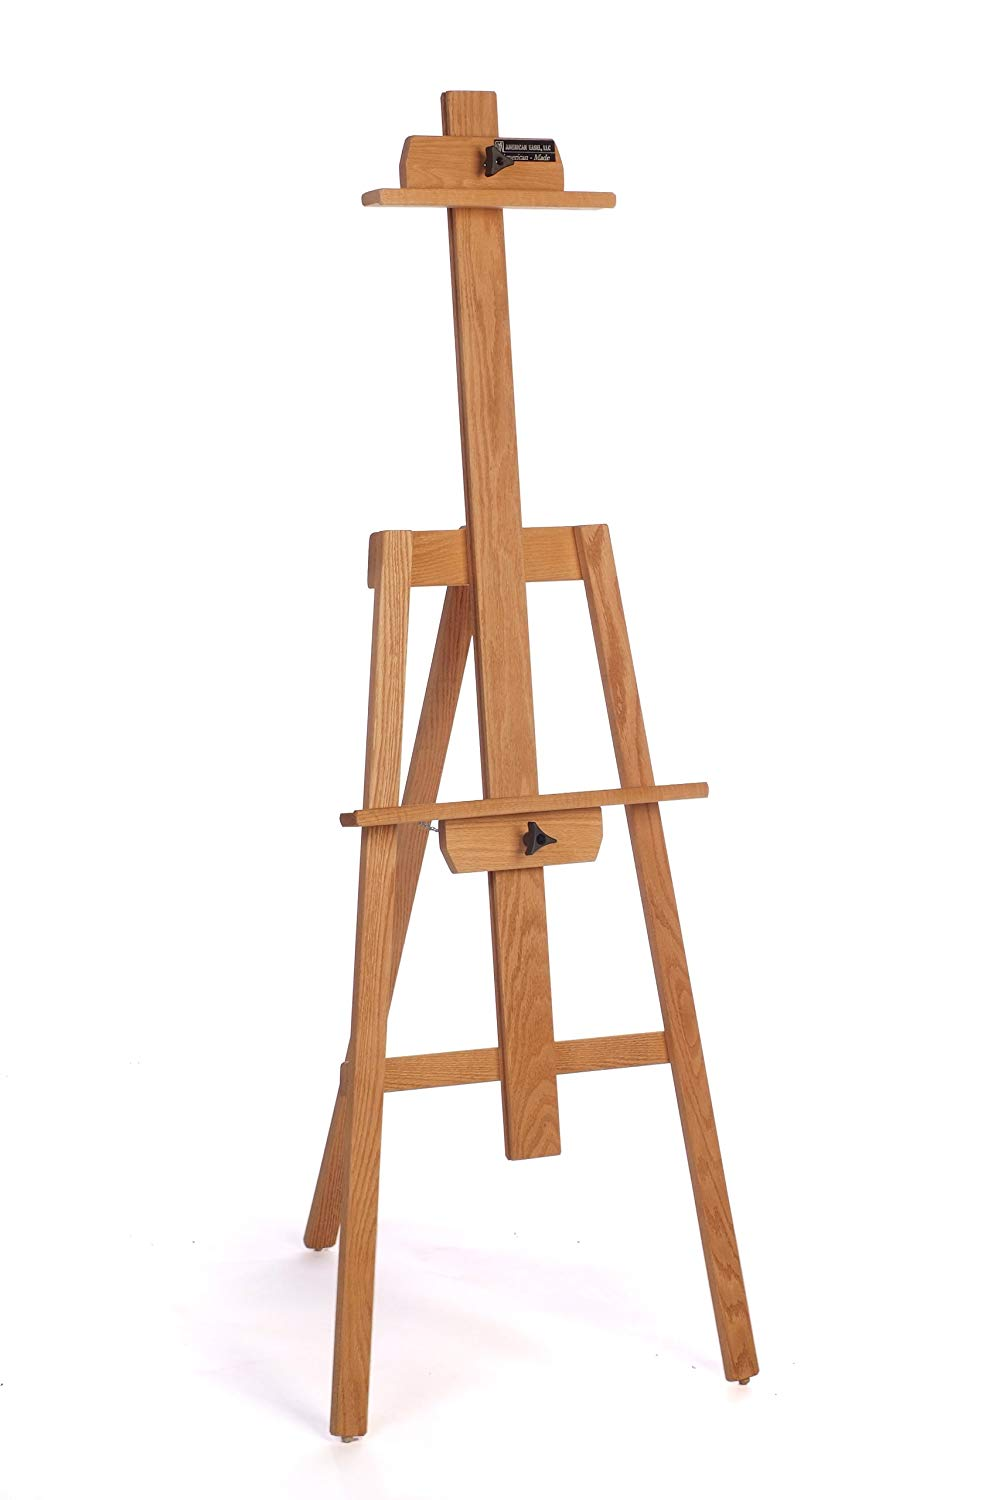 American Easel Oak Yazhi Easel-Golden Finish   This is a great sturdy stand up easel for painting on medium/large canvases or panels. I've had mine for at least 20 years and it still works perfectly. It folds up relatively flat for carrying in your car when going on painting road trips. It's fully adjustable and can support canvases and panels of most sizes.